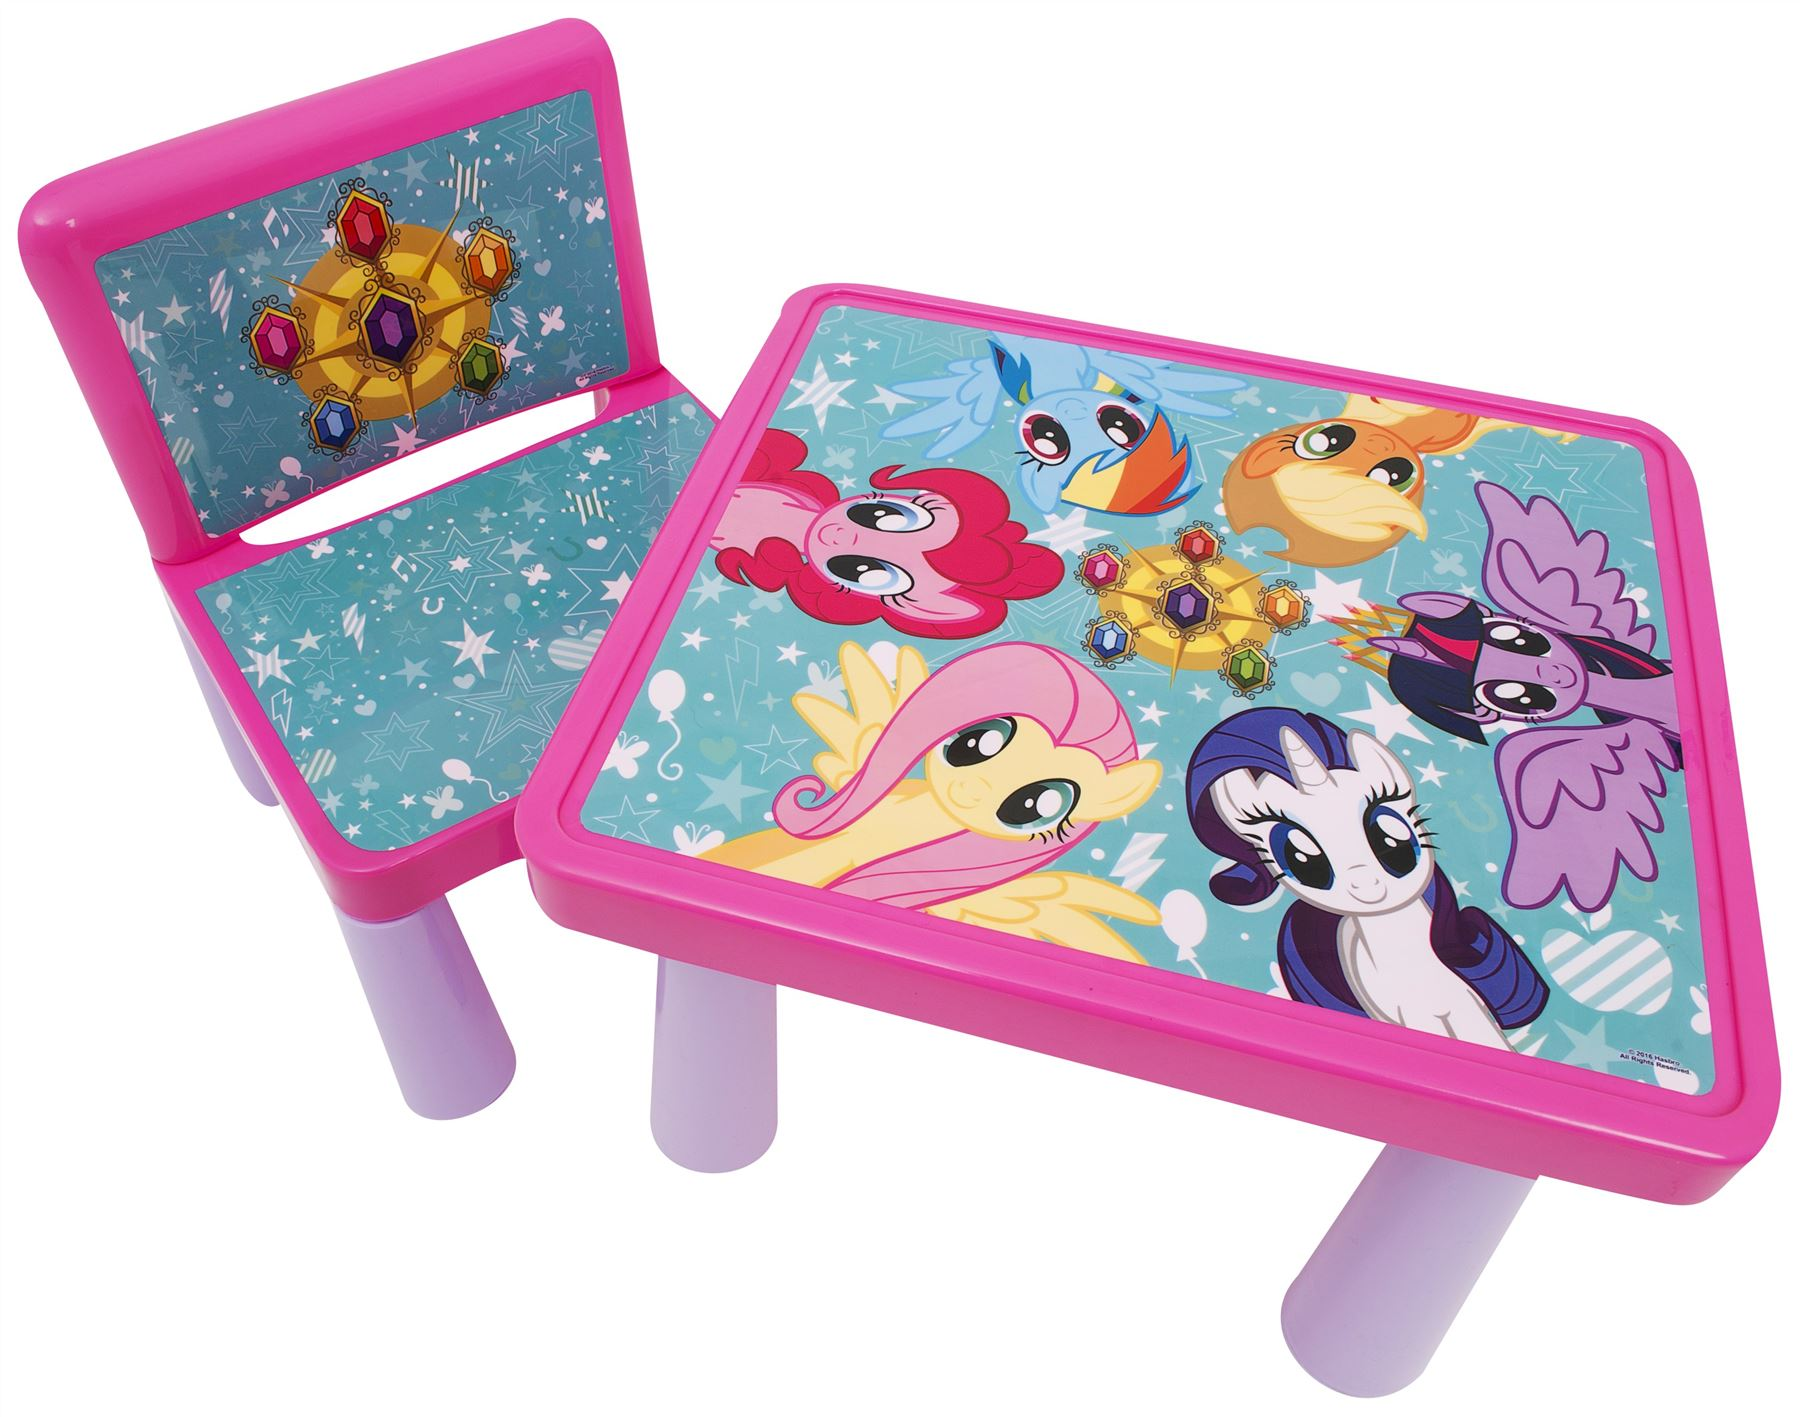 My little pony colouring table - My Little Pony Colouring Table